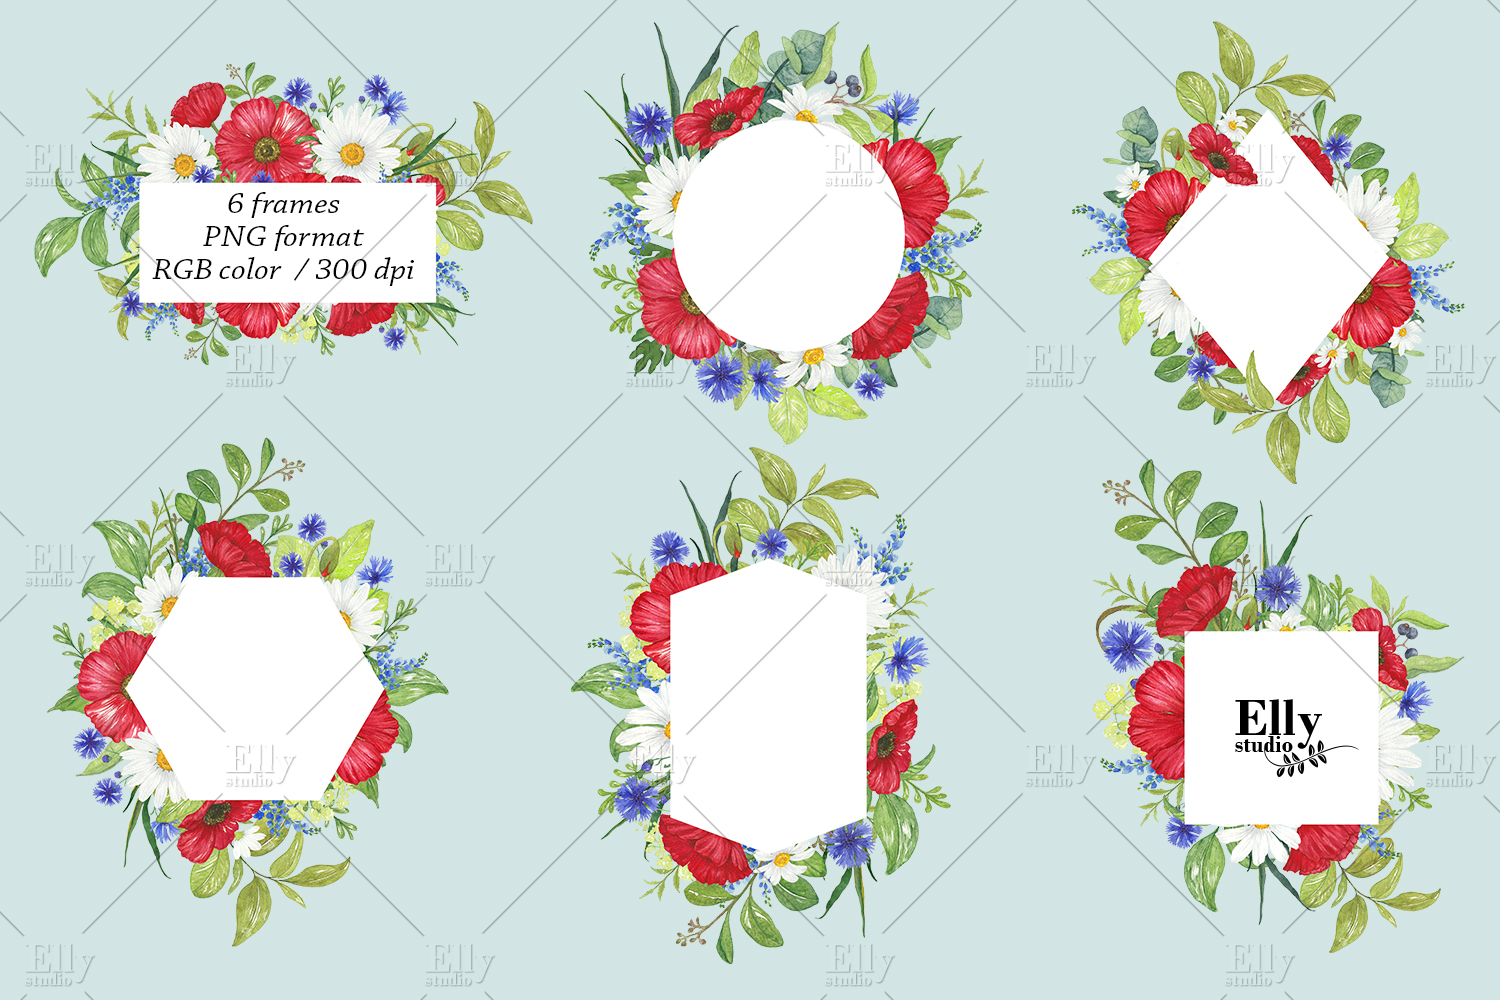 Watercolor Poppies Clipart Summer Flowers example image 3